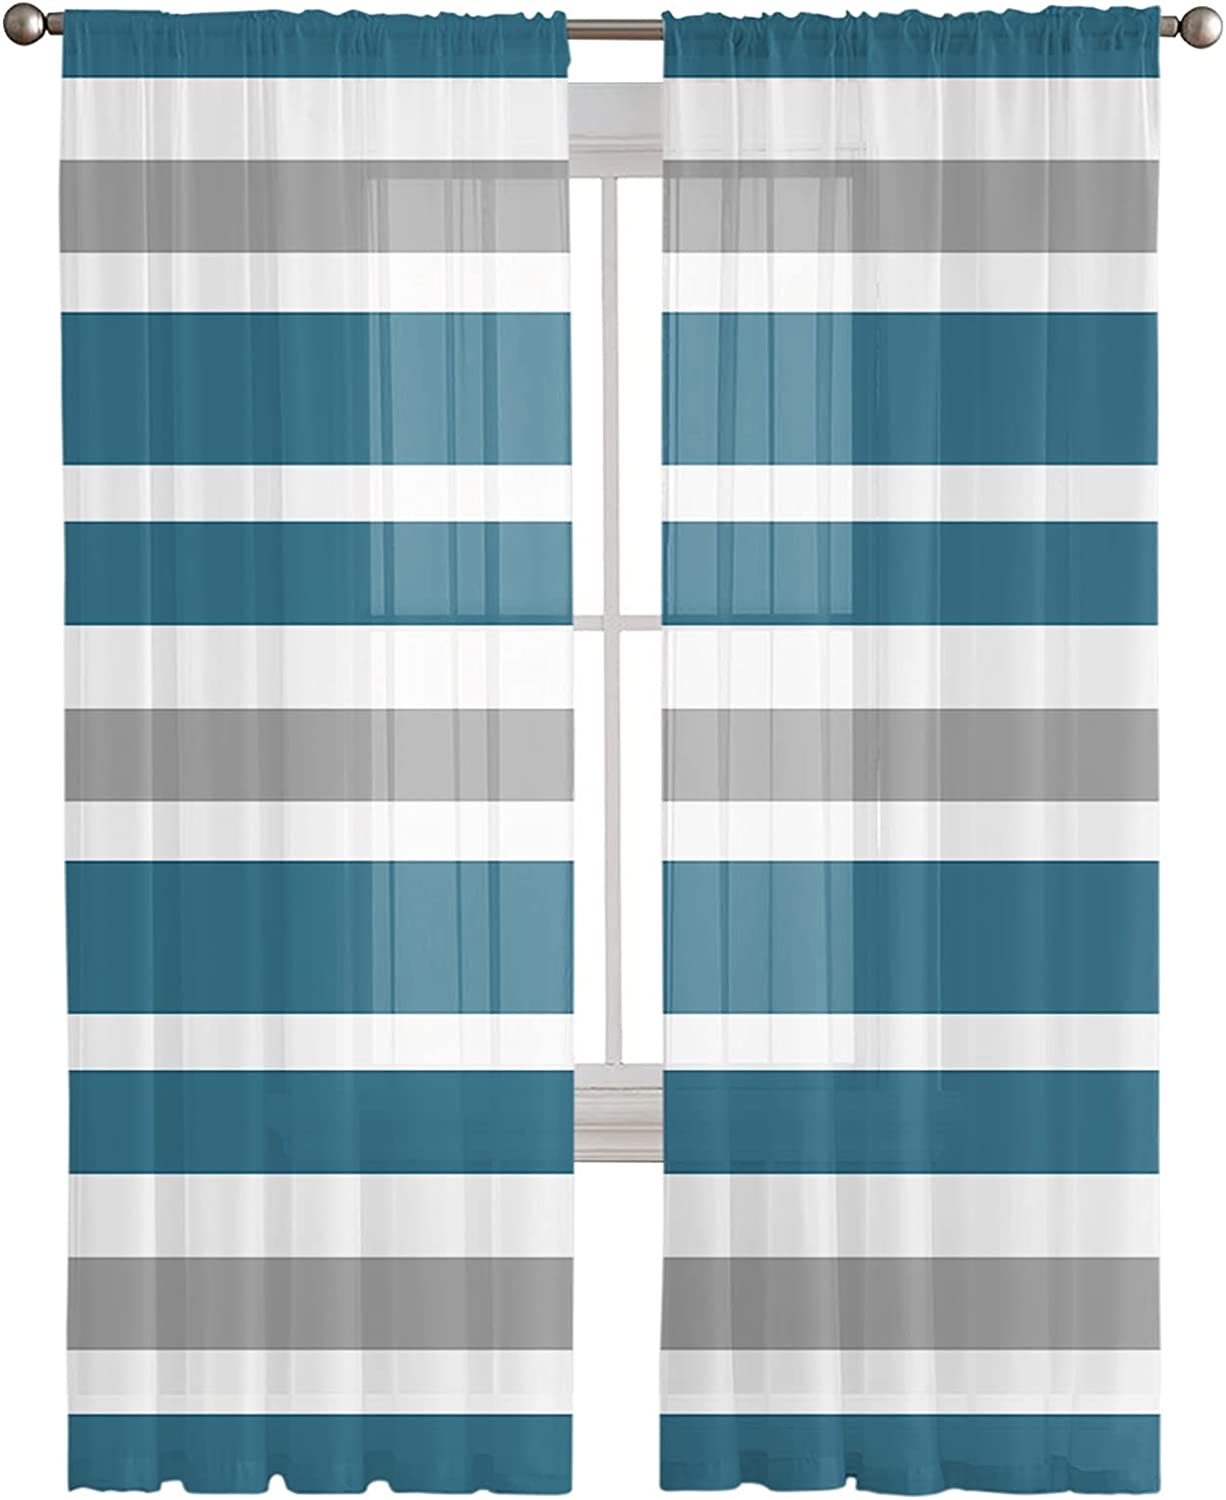 All Popular popular items free shipping Semi Sheer Curtains 2 Treatments Privacy Panels Window